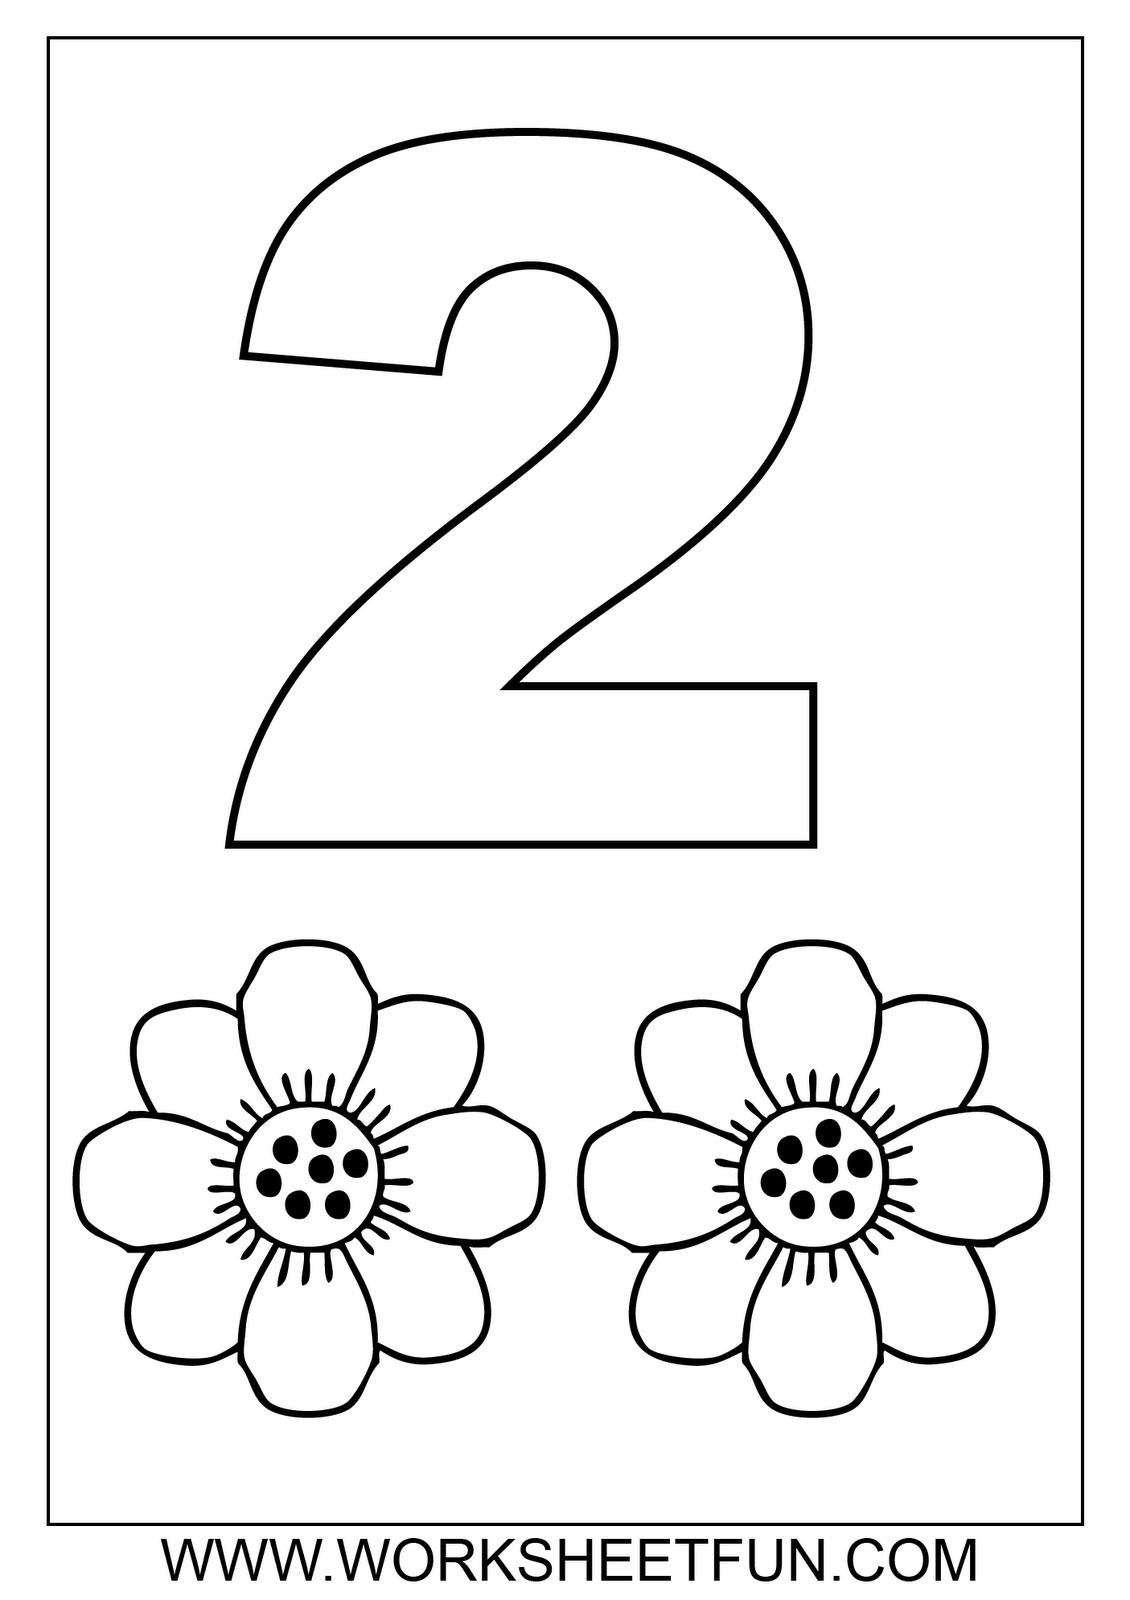 Worksheet Tracing The Number 2 free math worksheets number coloring pinterest tracing worksheets